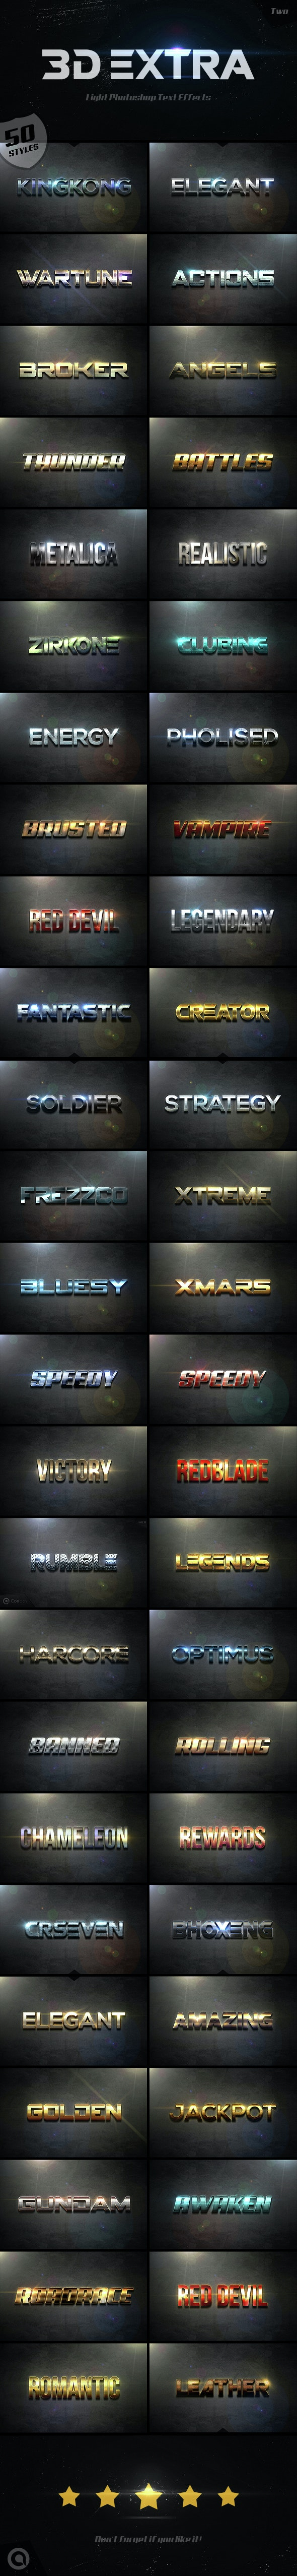 3D Extra Light Text Effects Bundle Two - Styles Photoshop